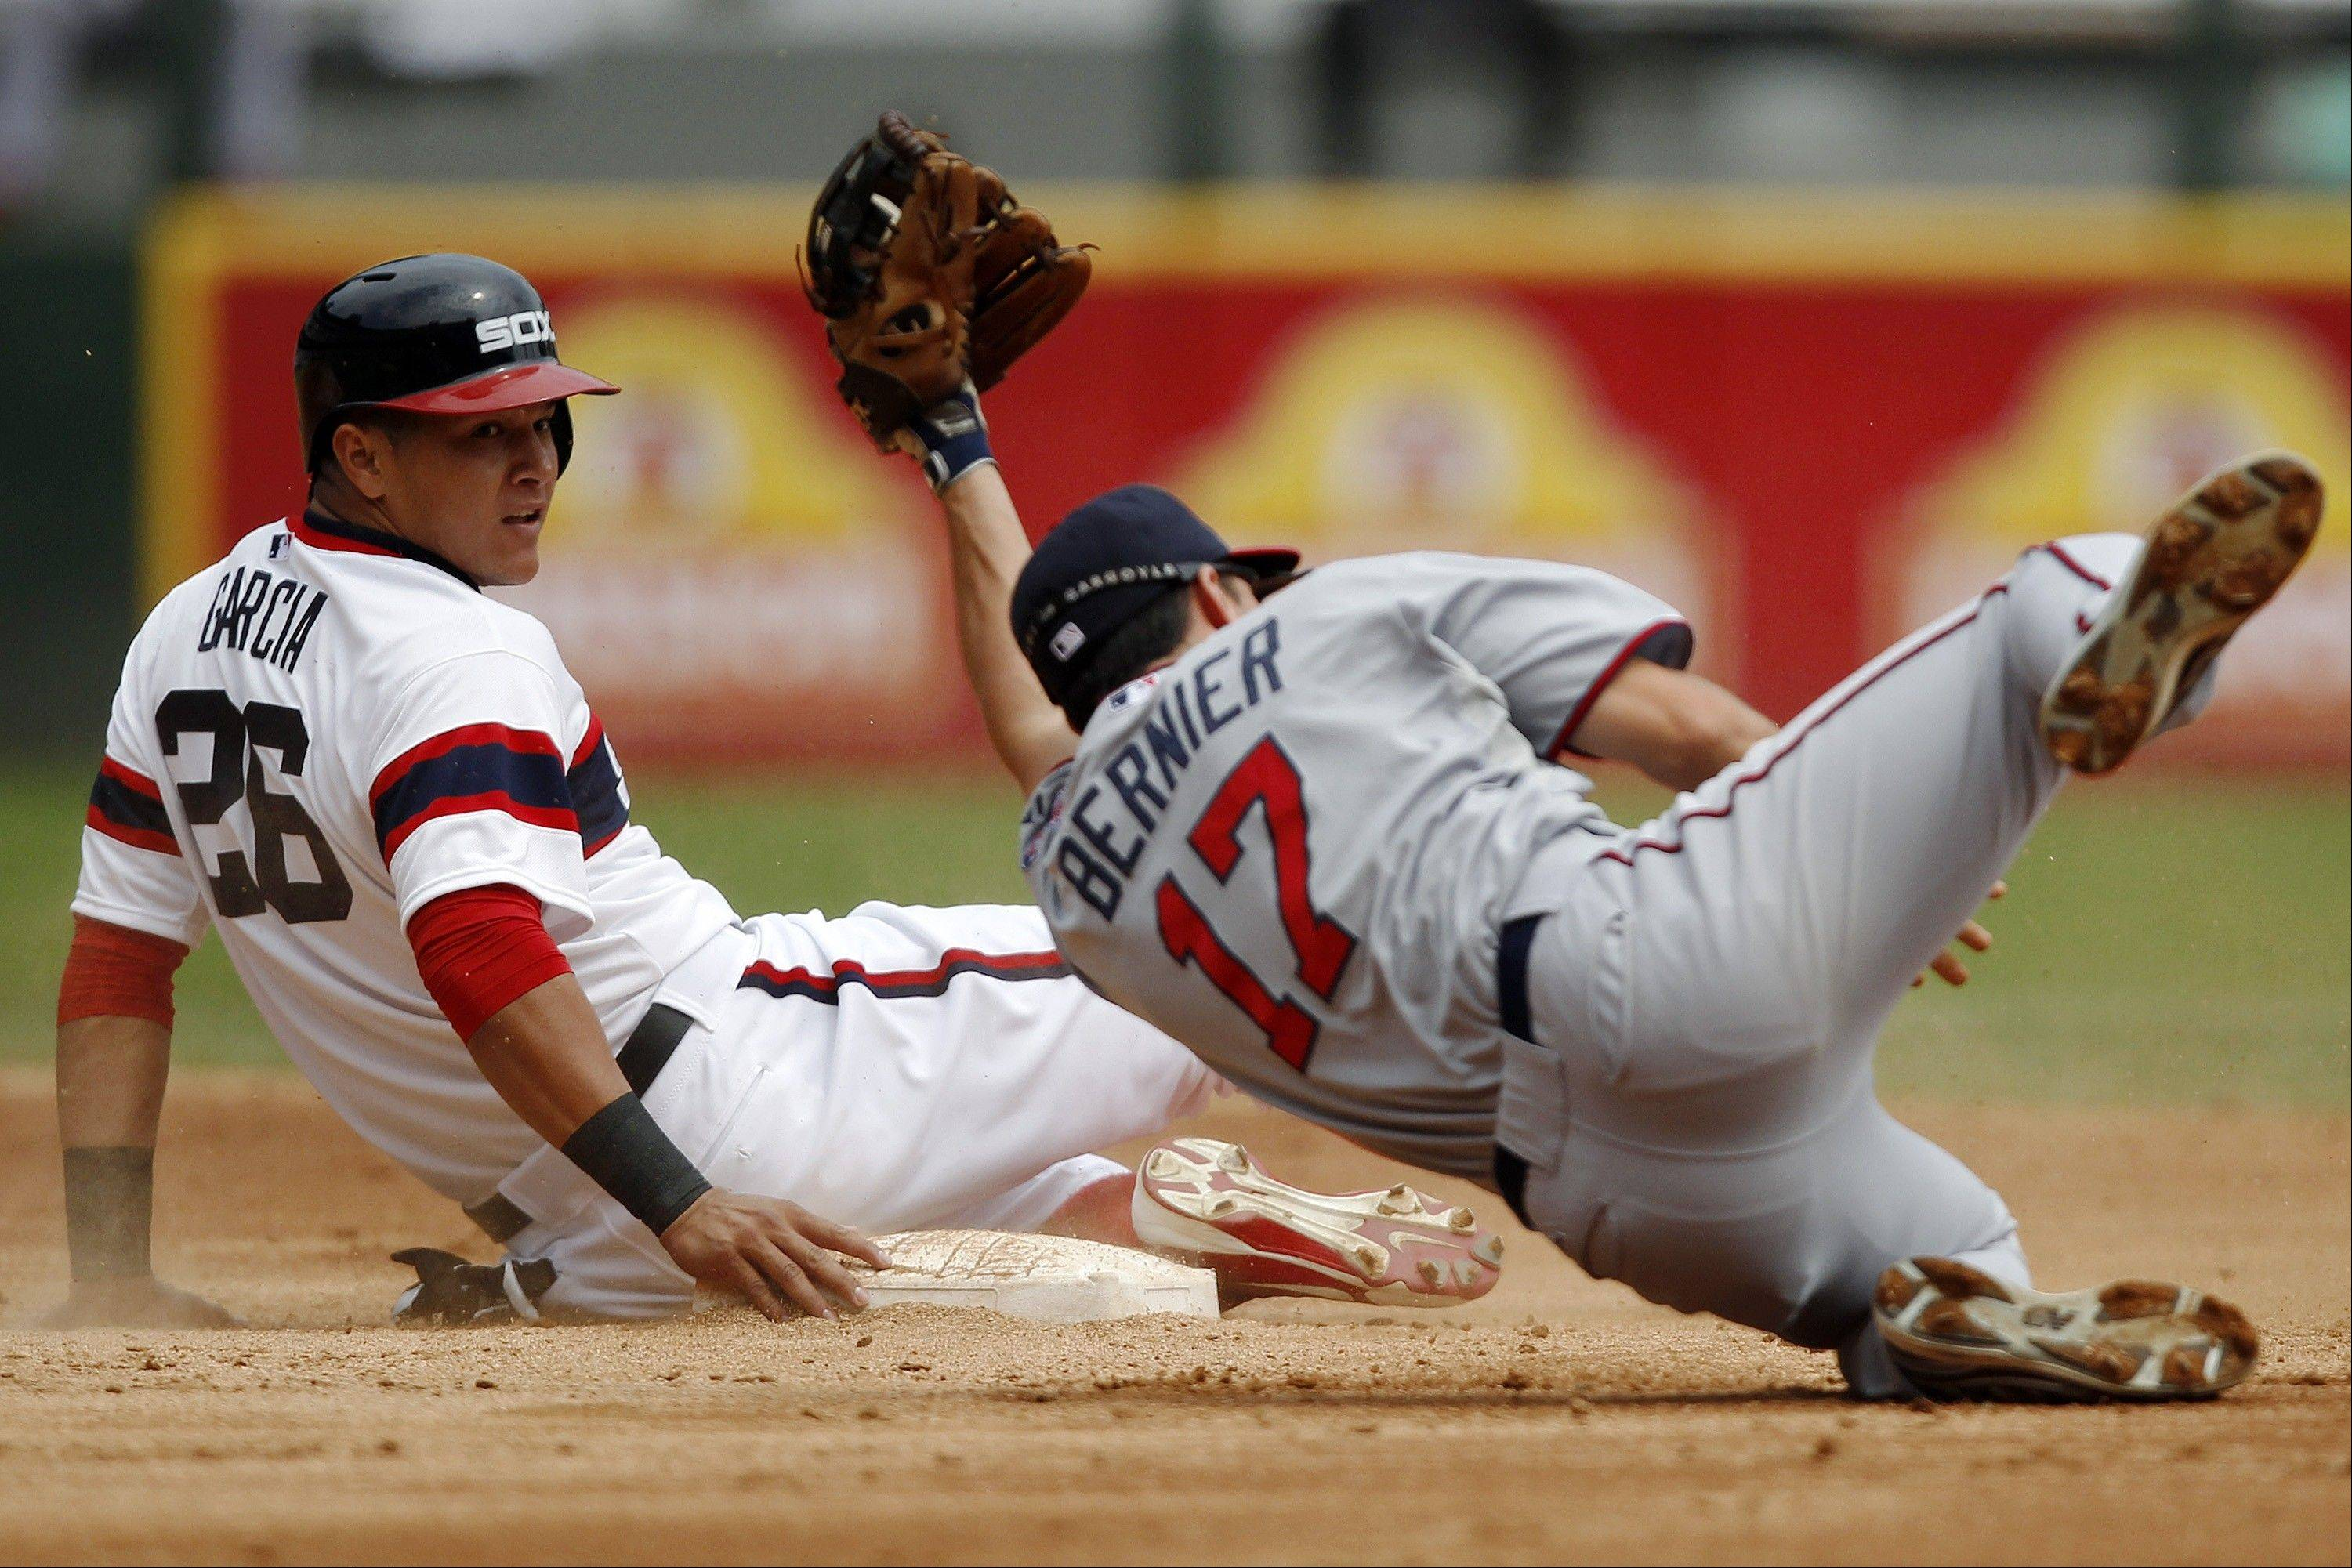 The White Sox' Avisail Garcia, left, steals second as Minnesota Twins shortstop Doug Bernier is late on the tag during Sunday's second inning at U.S. Cellular Field.